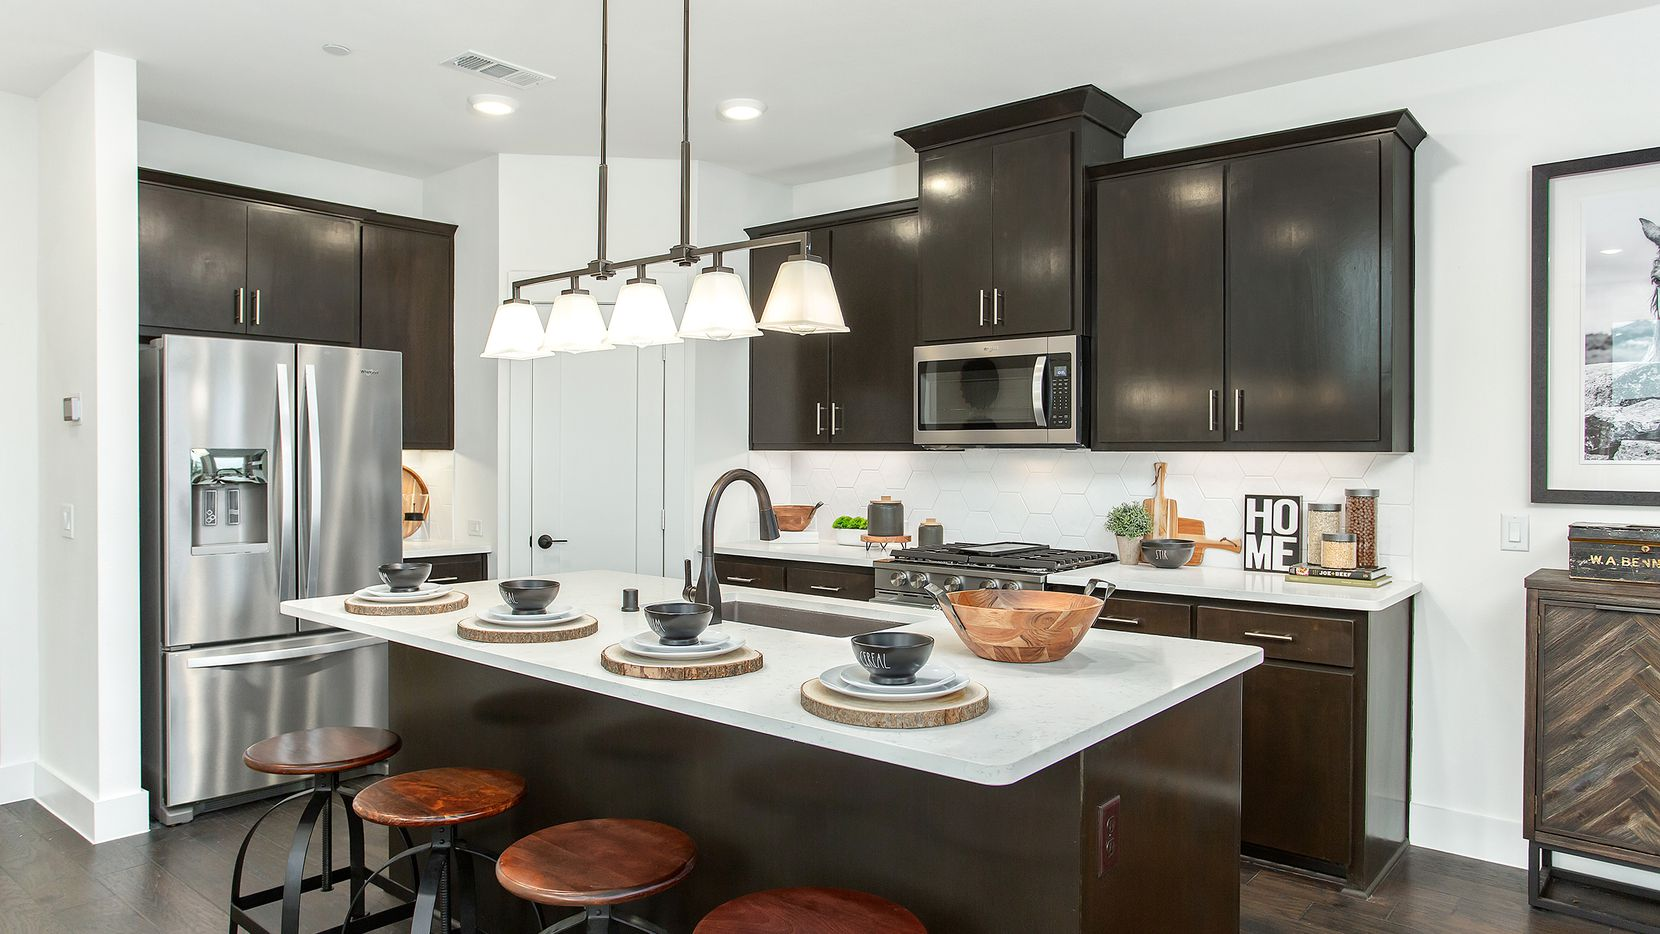 Grenadier Homes offers pre-grand opening specials on low-maintenance townhomes at the new Woodbridge community in Wylie.